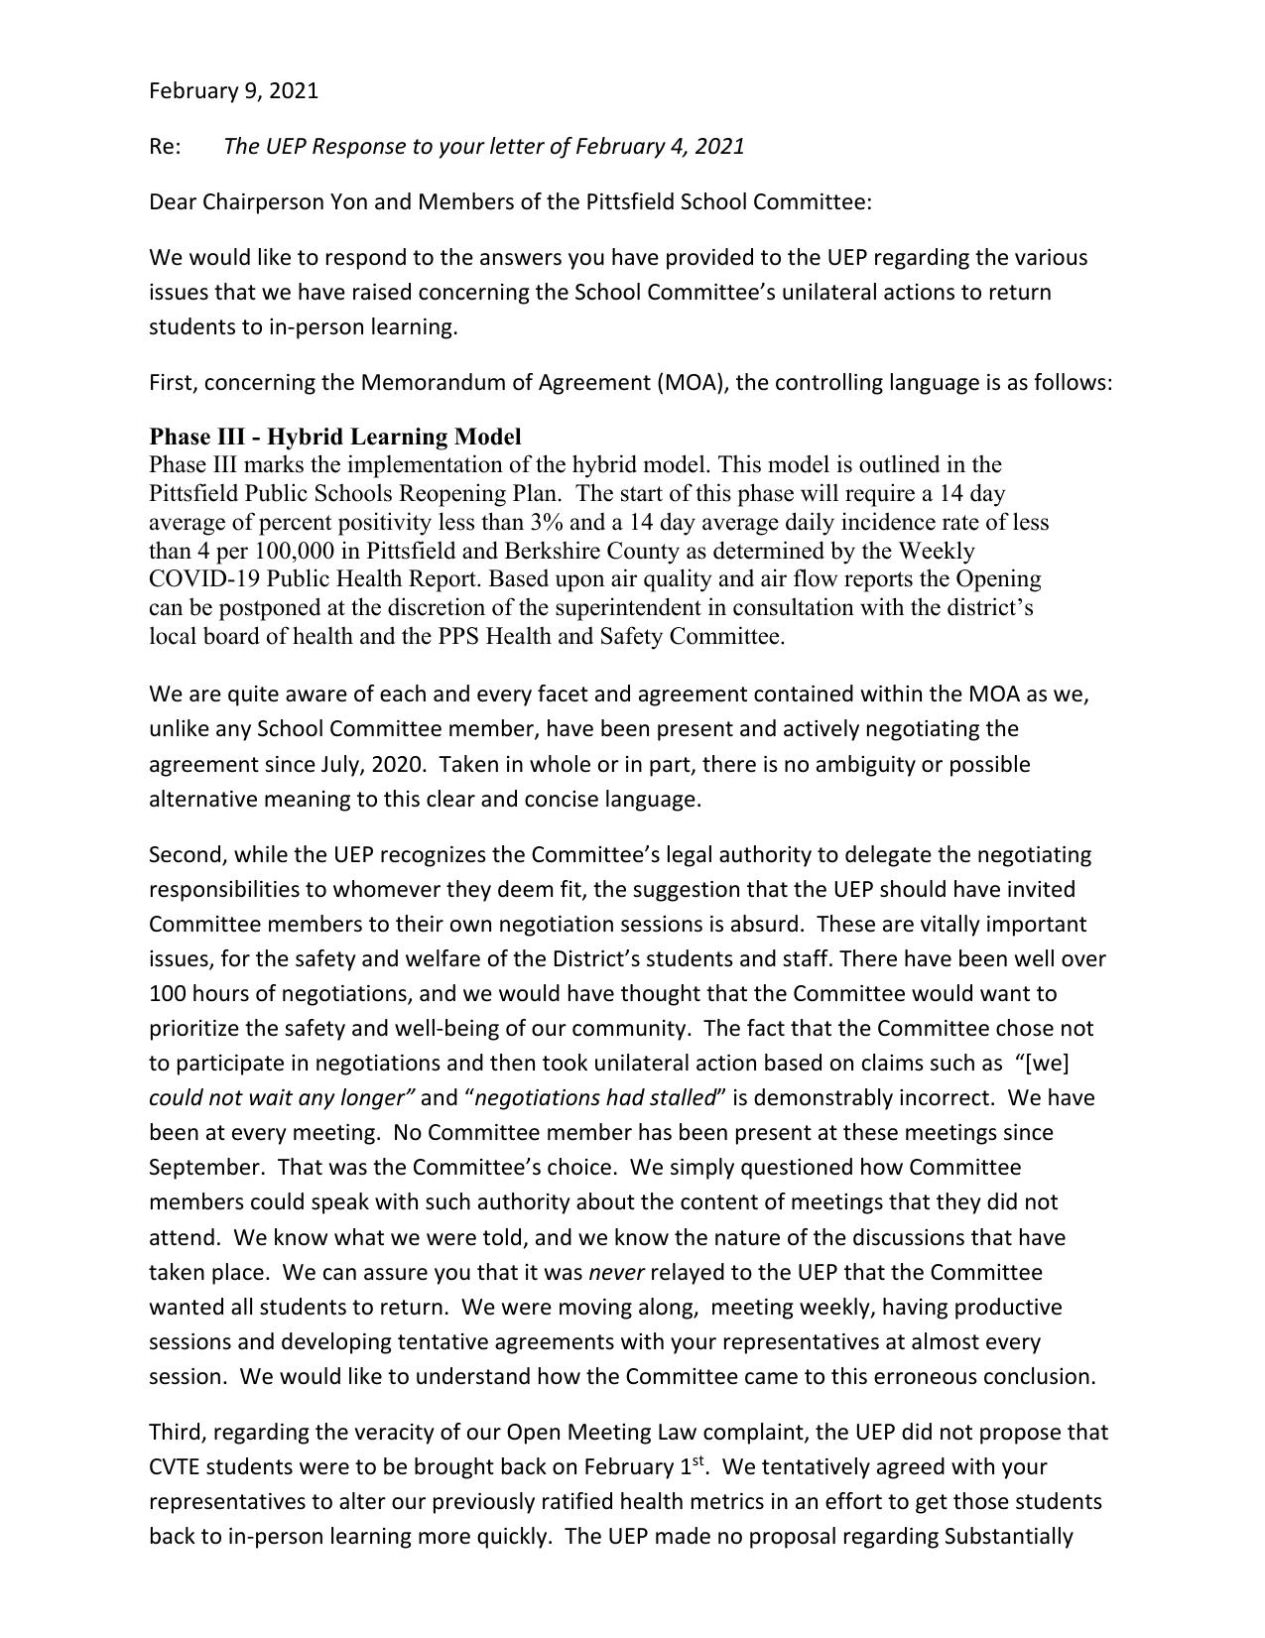 UEP Letter to Pittsfield School Committee